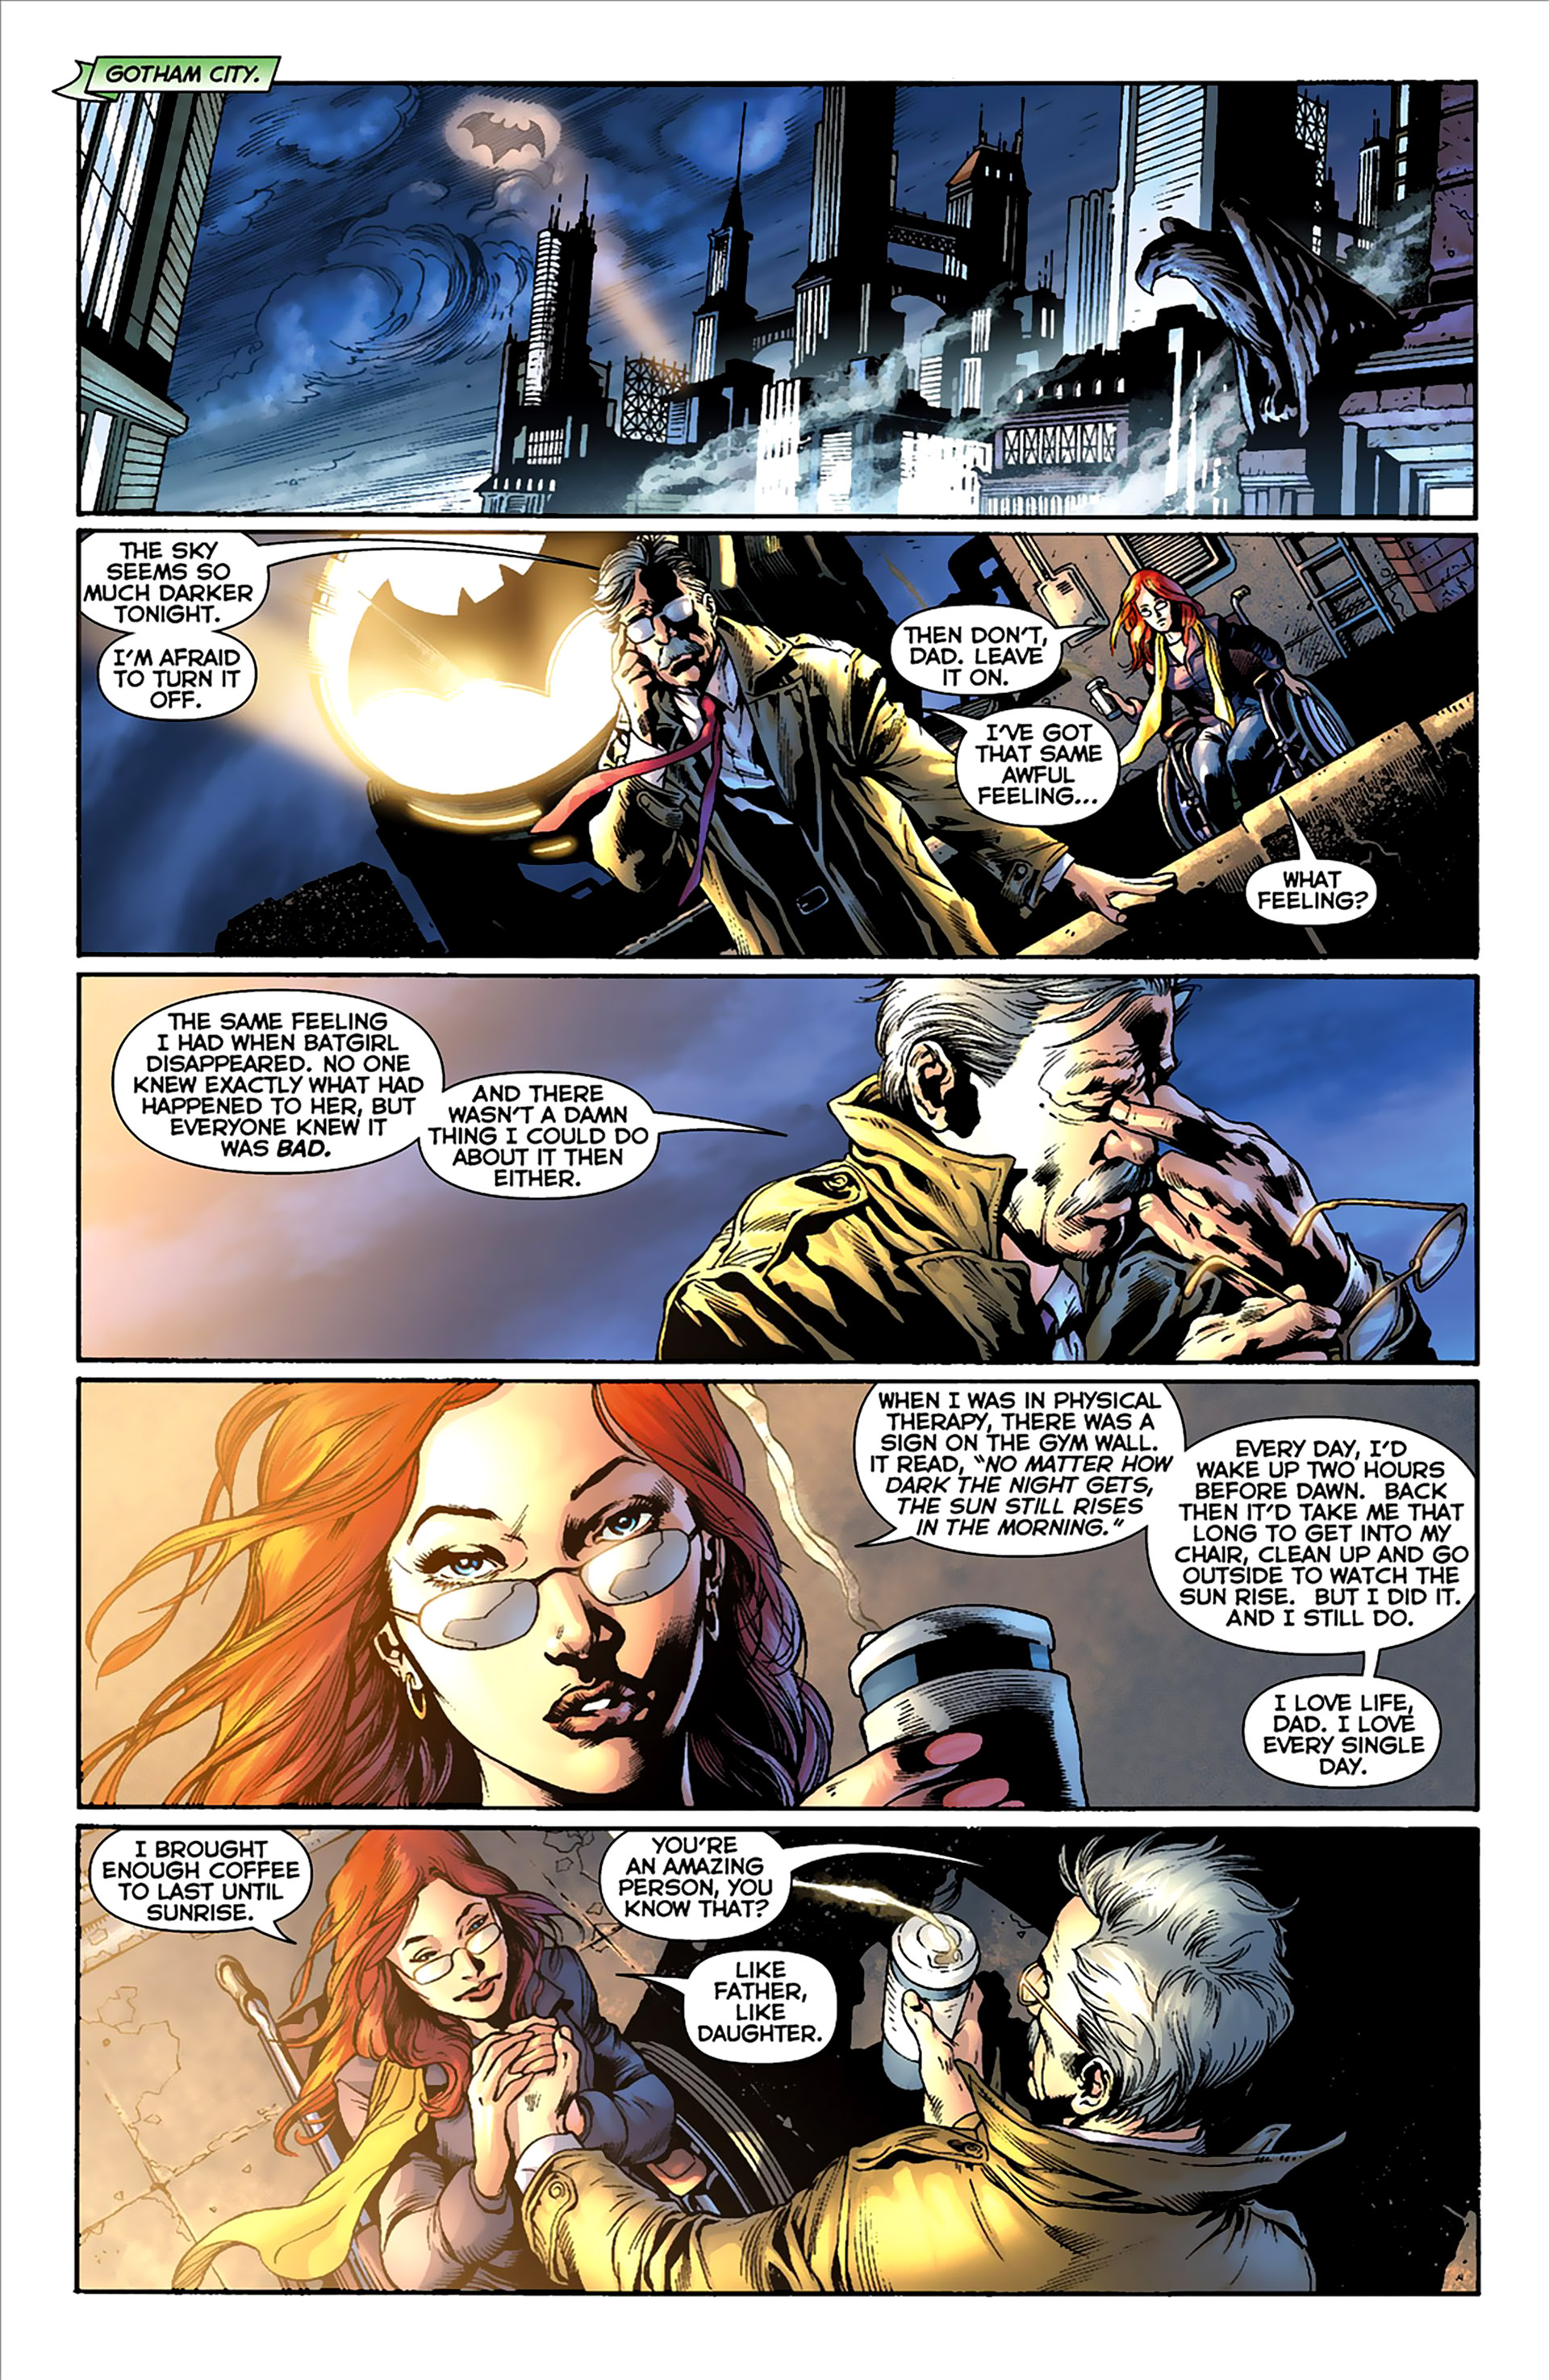 Blackest Night Tales of the Corps #1 Spoilers - BatmanYTB